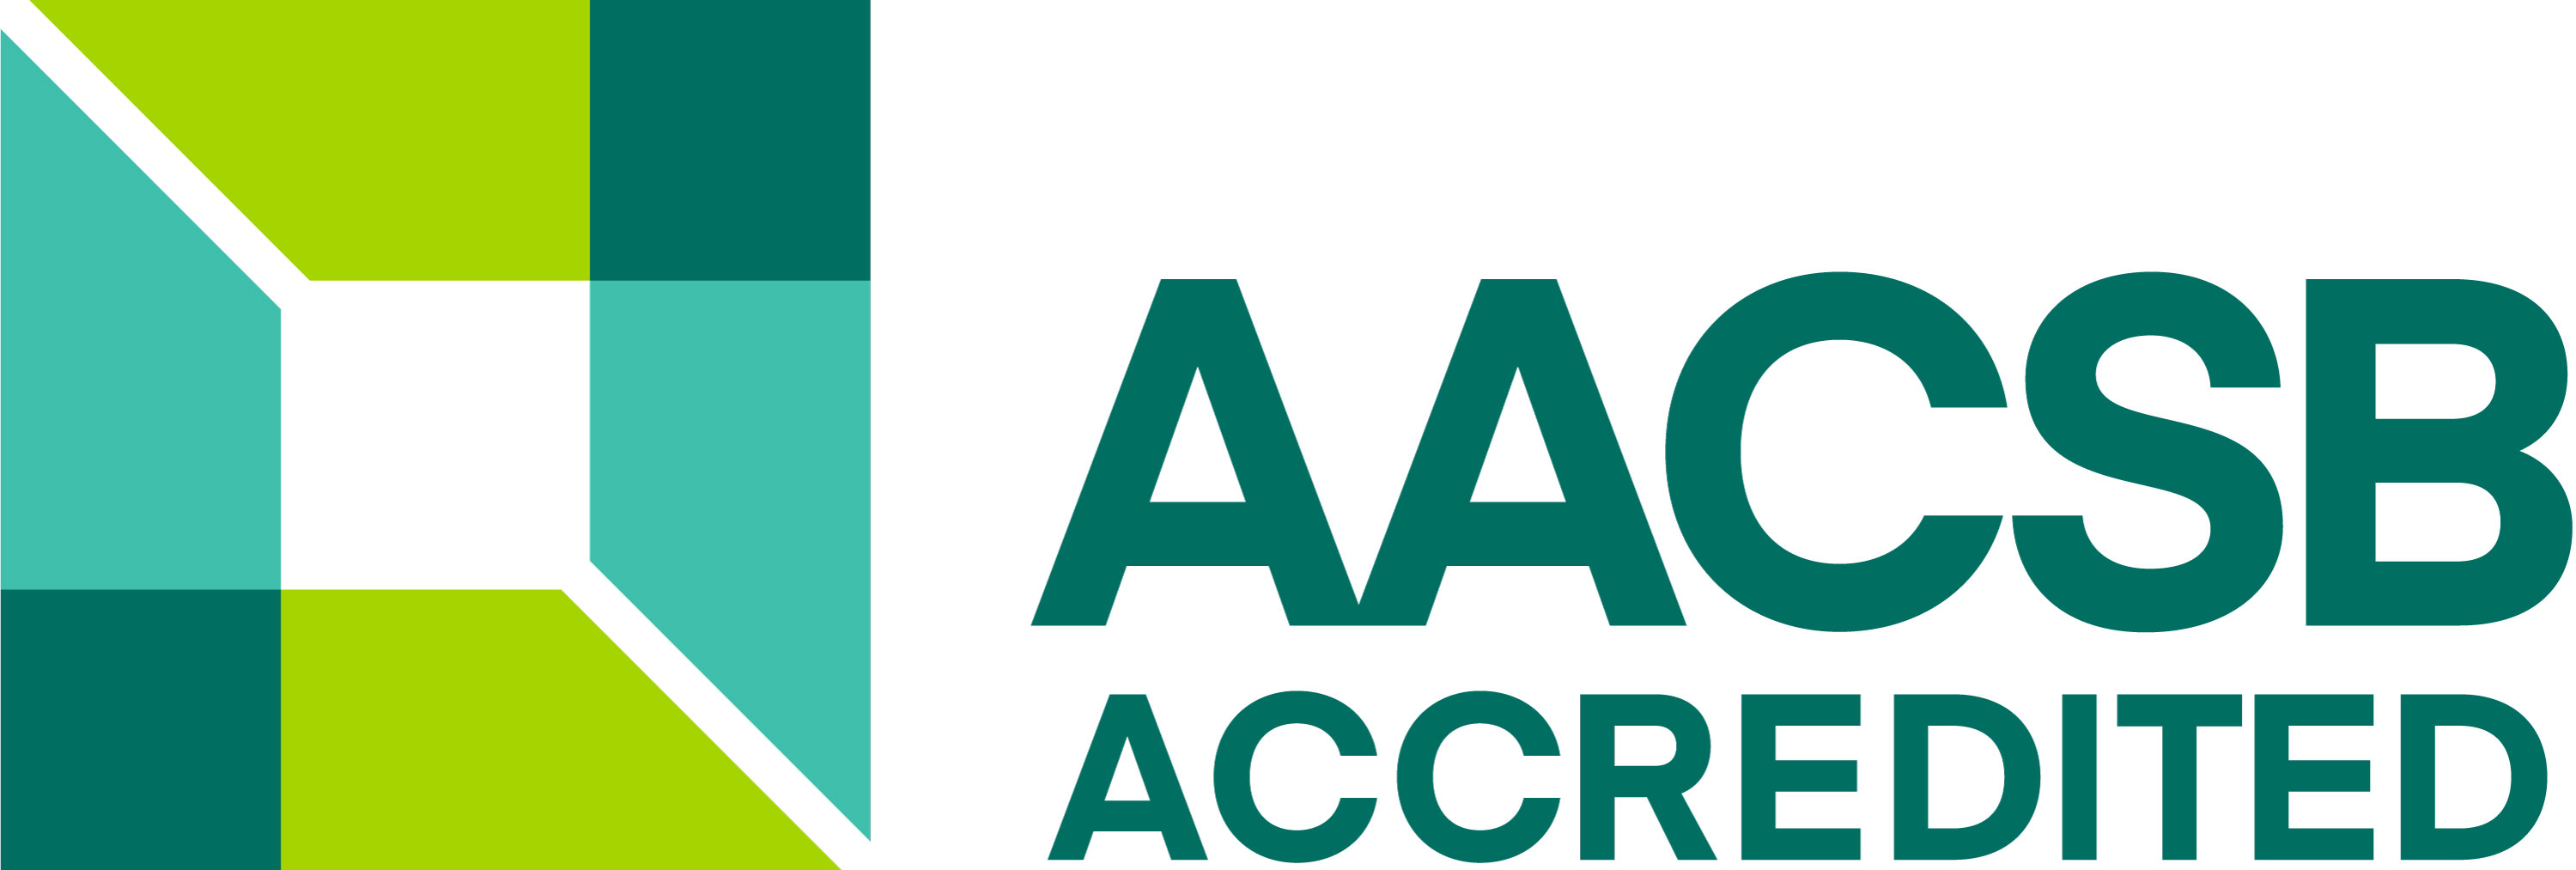 AACSB accredited business program